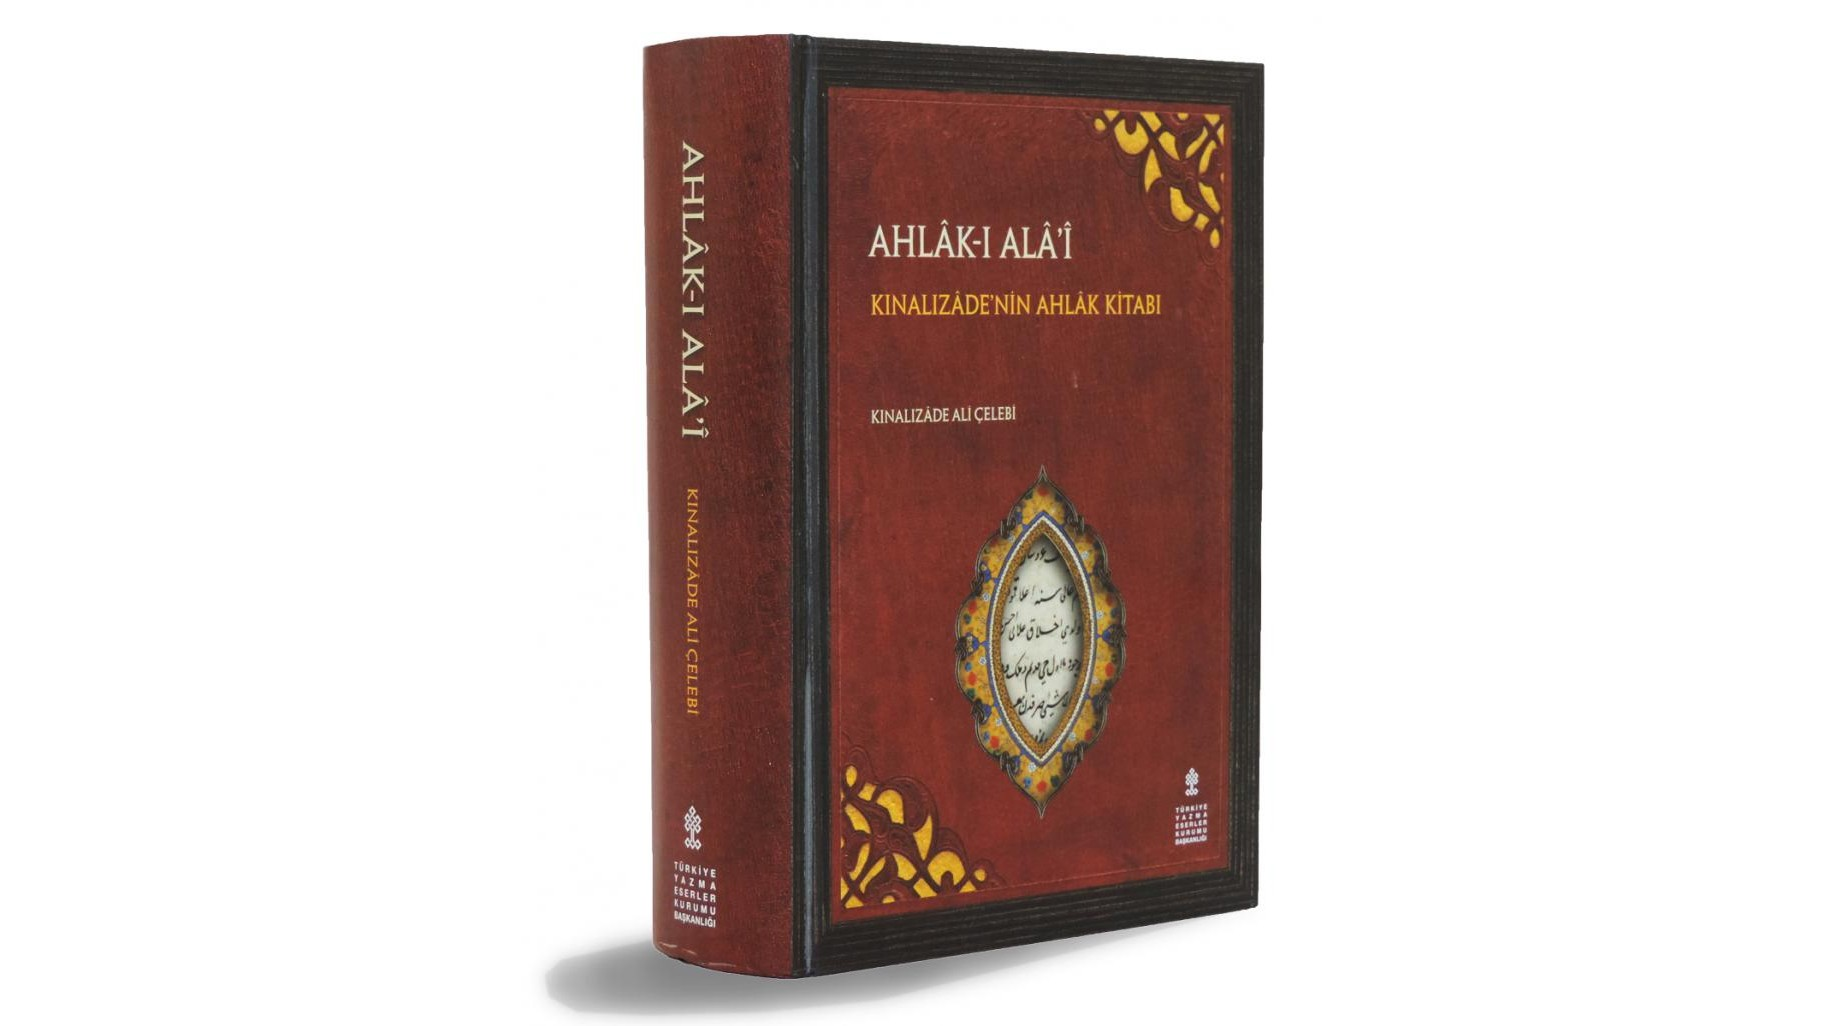 u201cAhlak-u0131 Alau2019i,u201d which is the most significant work by Ku0131nalu0131zade, was written with the claim that it would contain each and every ethical issue of its time.